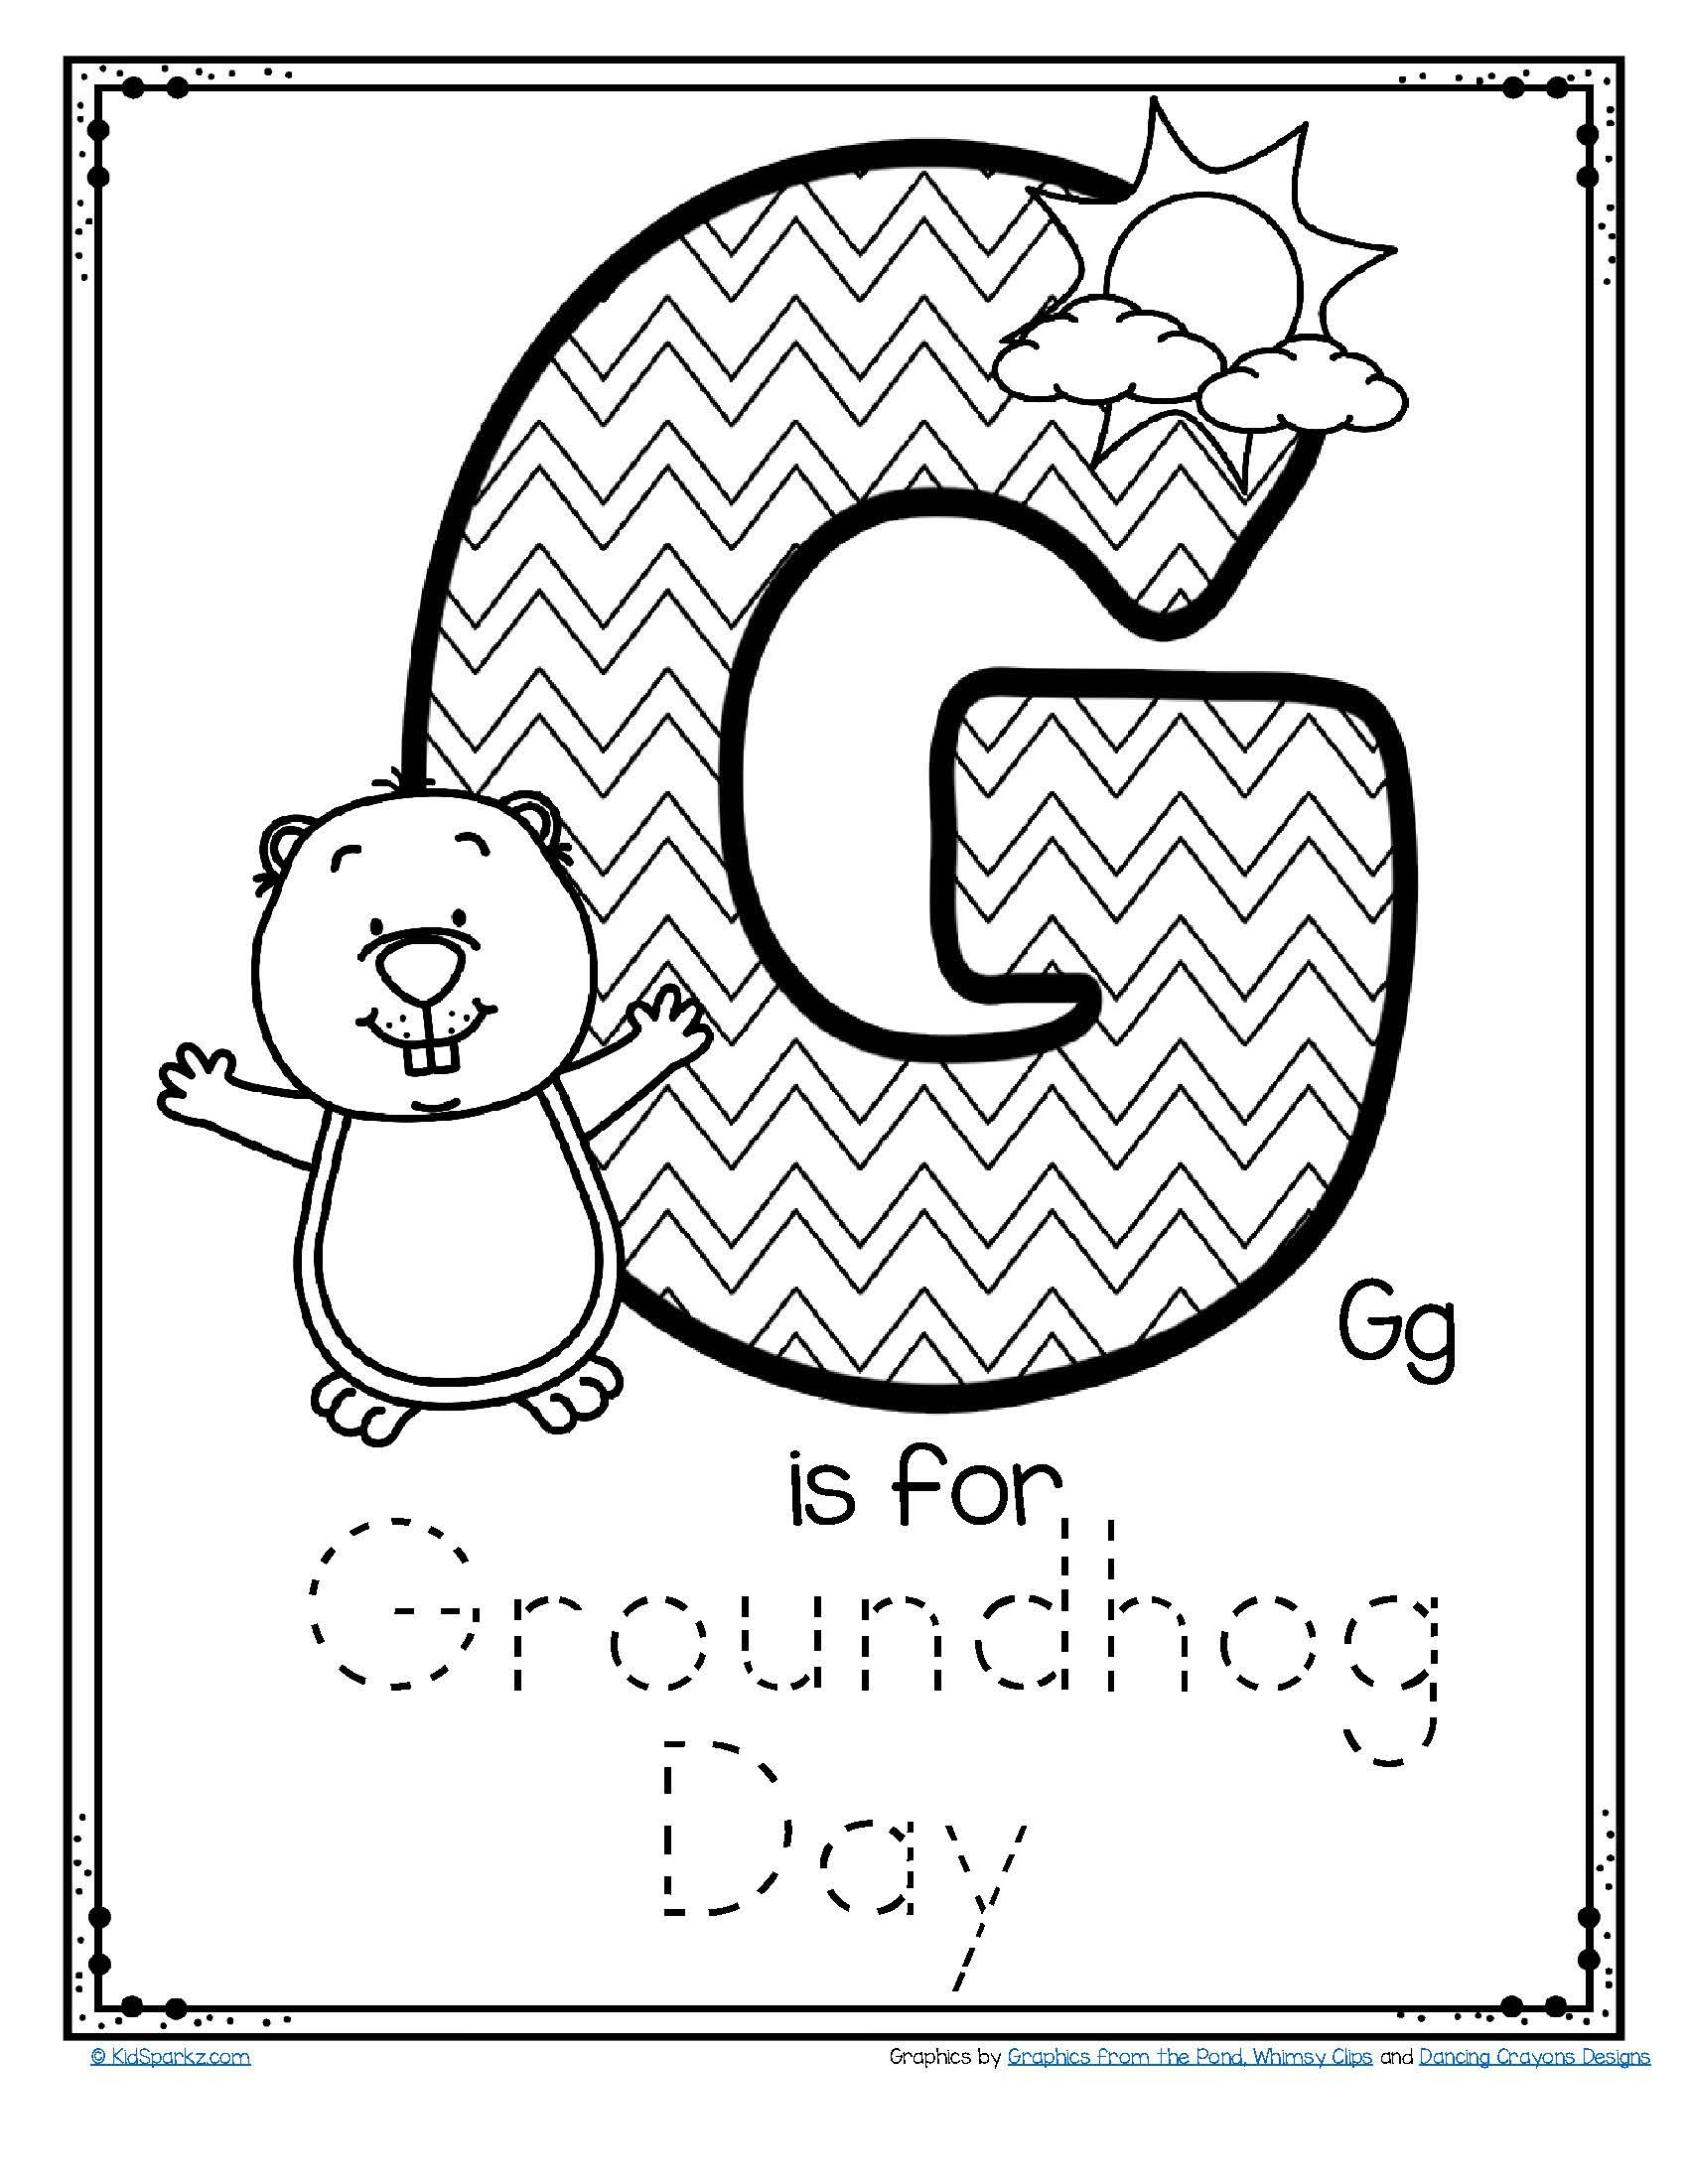 Letter G Is For Groundhog Day Trace And Color Printable Poster Free In 2021 Groundhog Day Activities Groundhog Day Letter G [ 2200 x 1700 Pixel ]